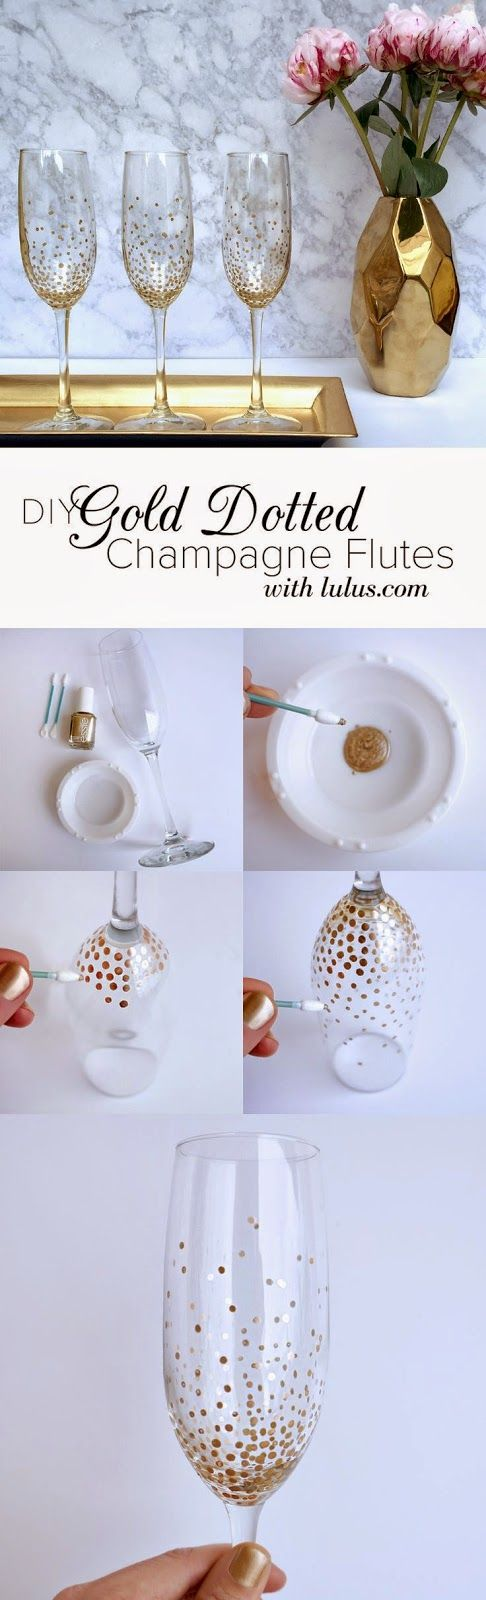 DIY gold dotted wine glasses.: